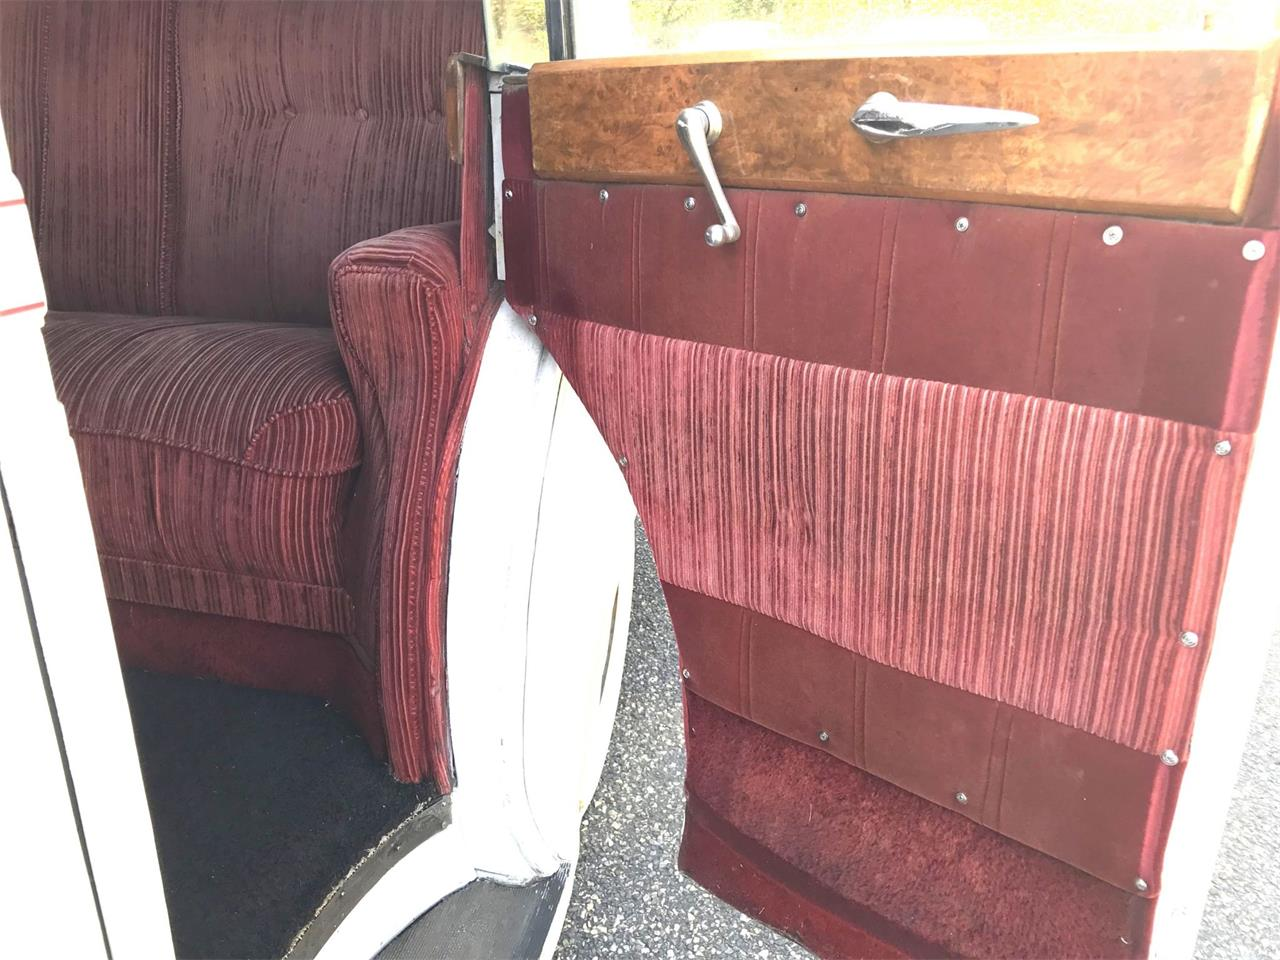 1948 Rolls-Royce Silver Wraith for sale in Stratford, NJ – photo 12